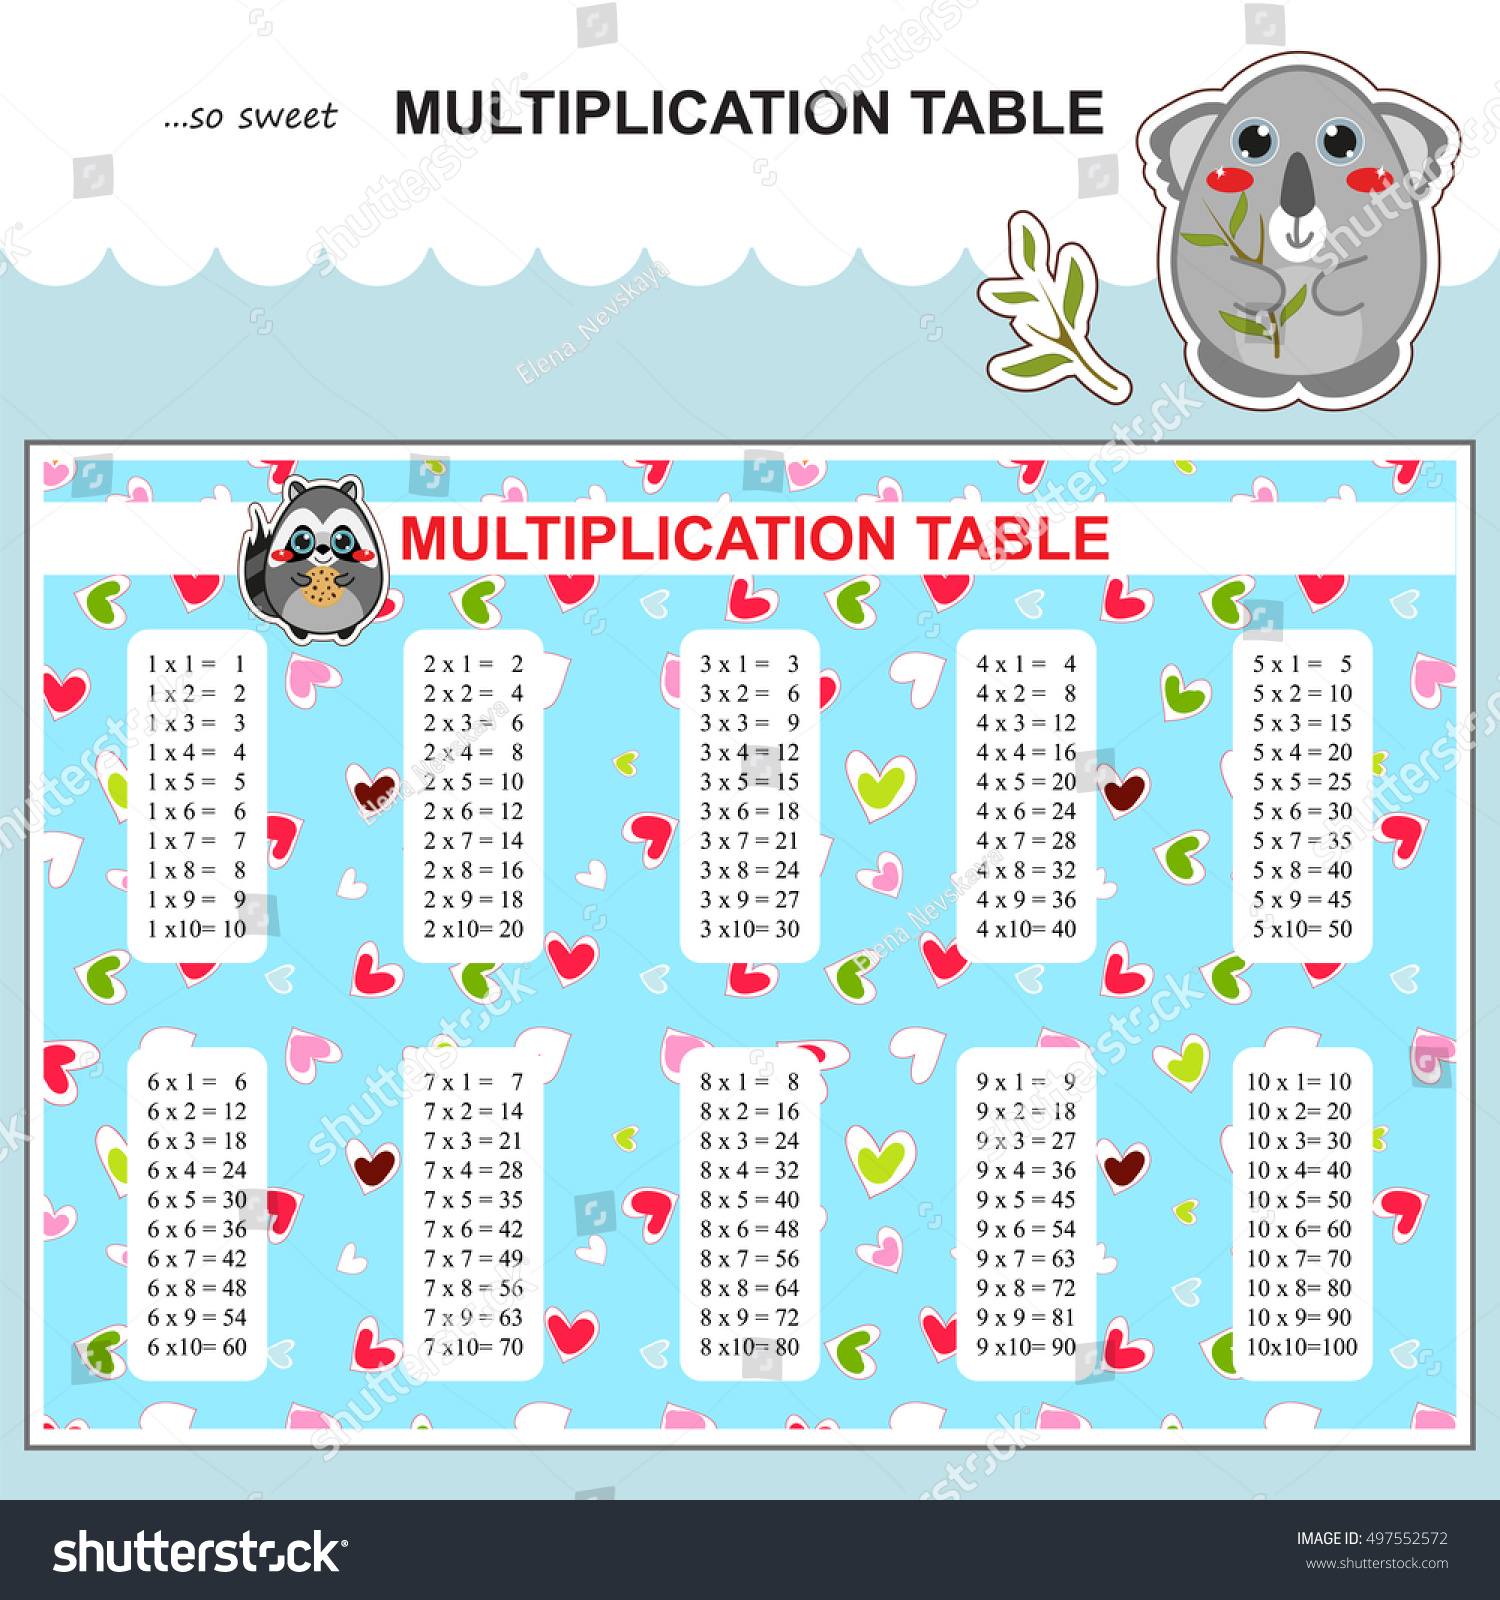 Poster 60 x 80 design - Printable Poster Card With Multiple Tables Kids Design Kawaii